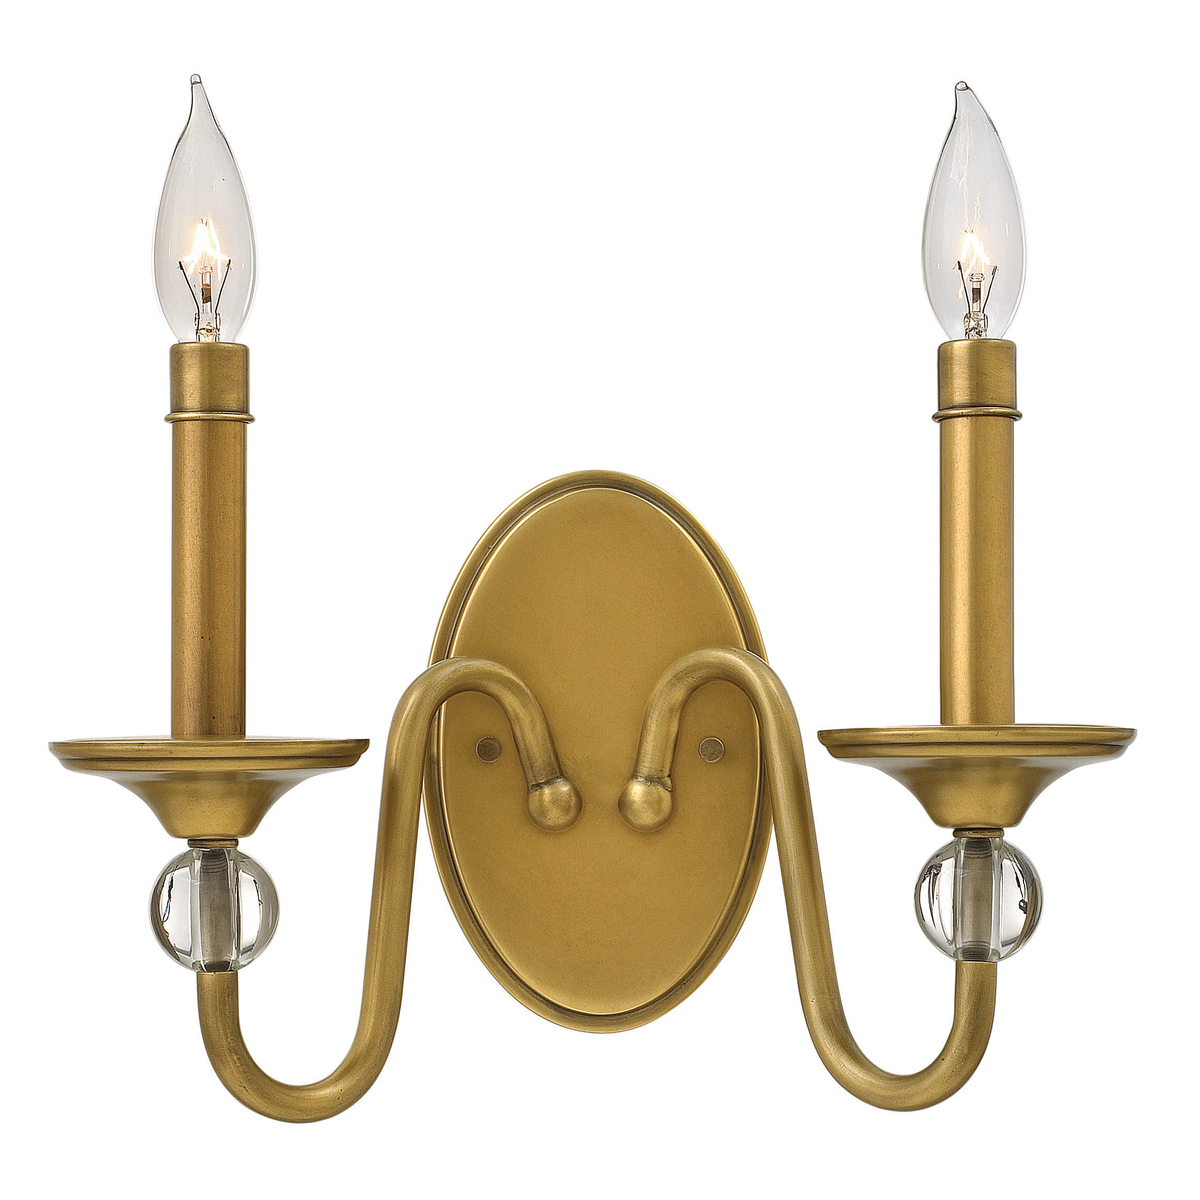 Hinkley Bathroom Wall Sconces : Hinkley Lighting (4952HB) Eleanor 2-Light Wall Sconce in Heritage Brass